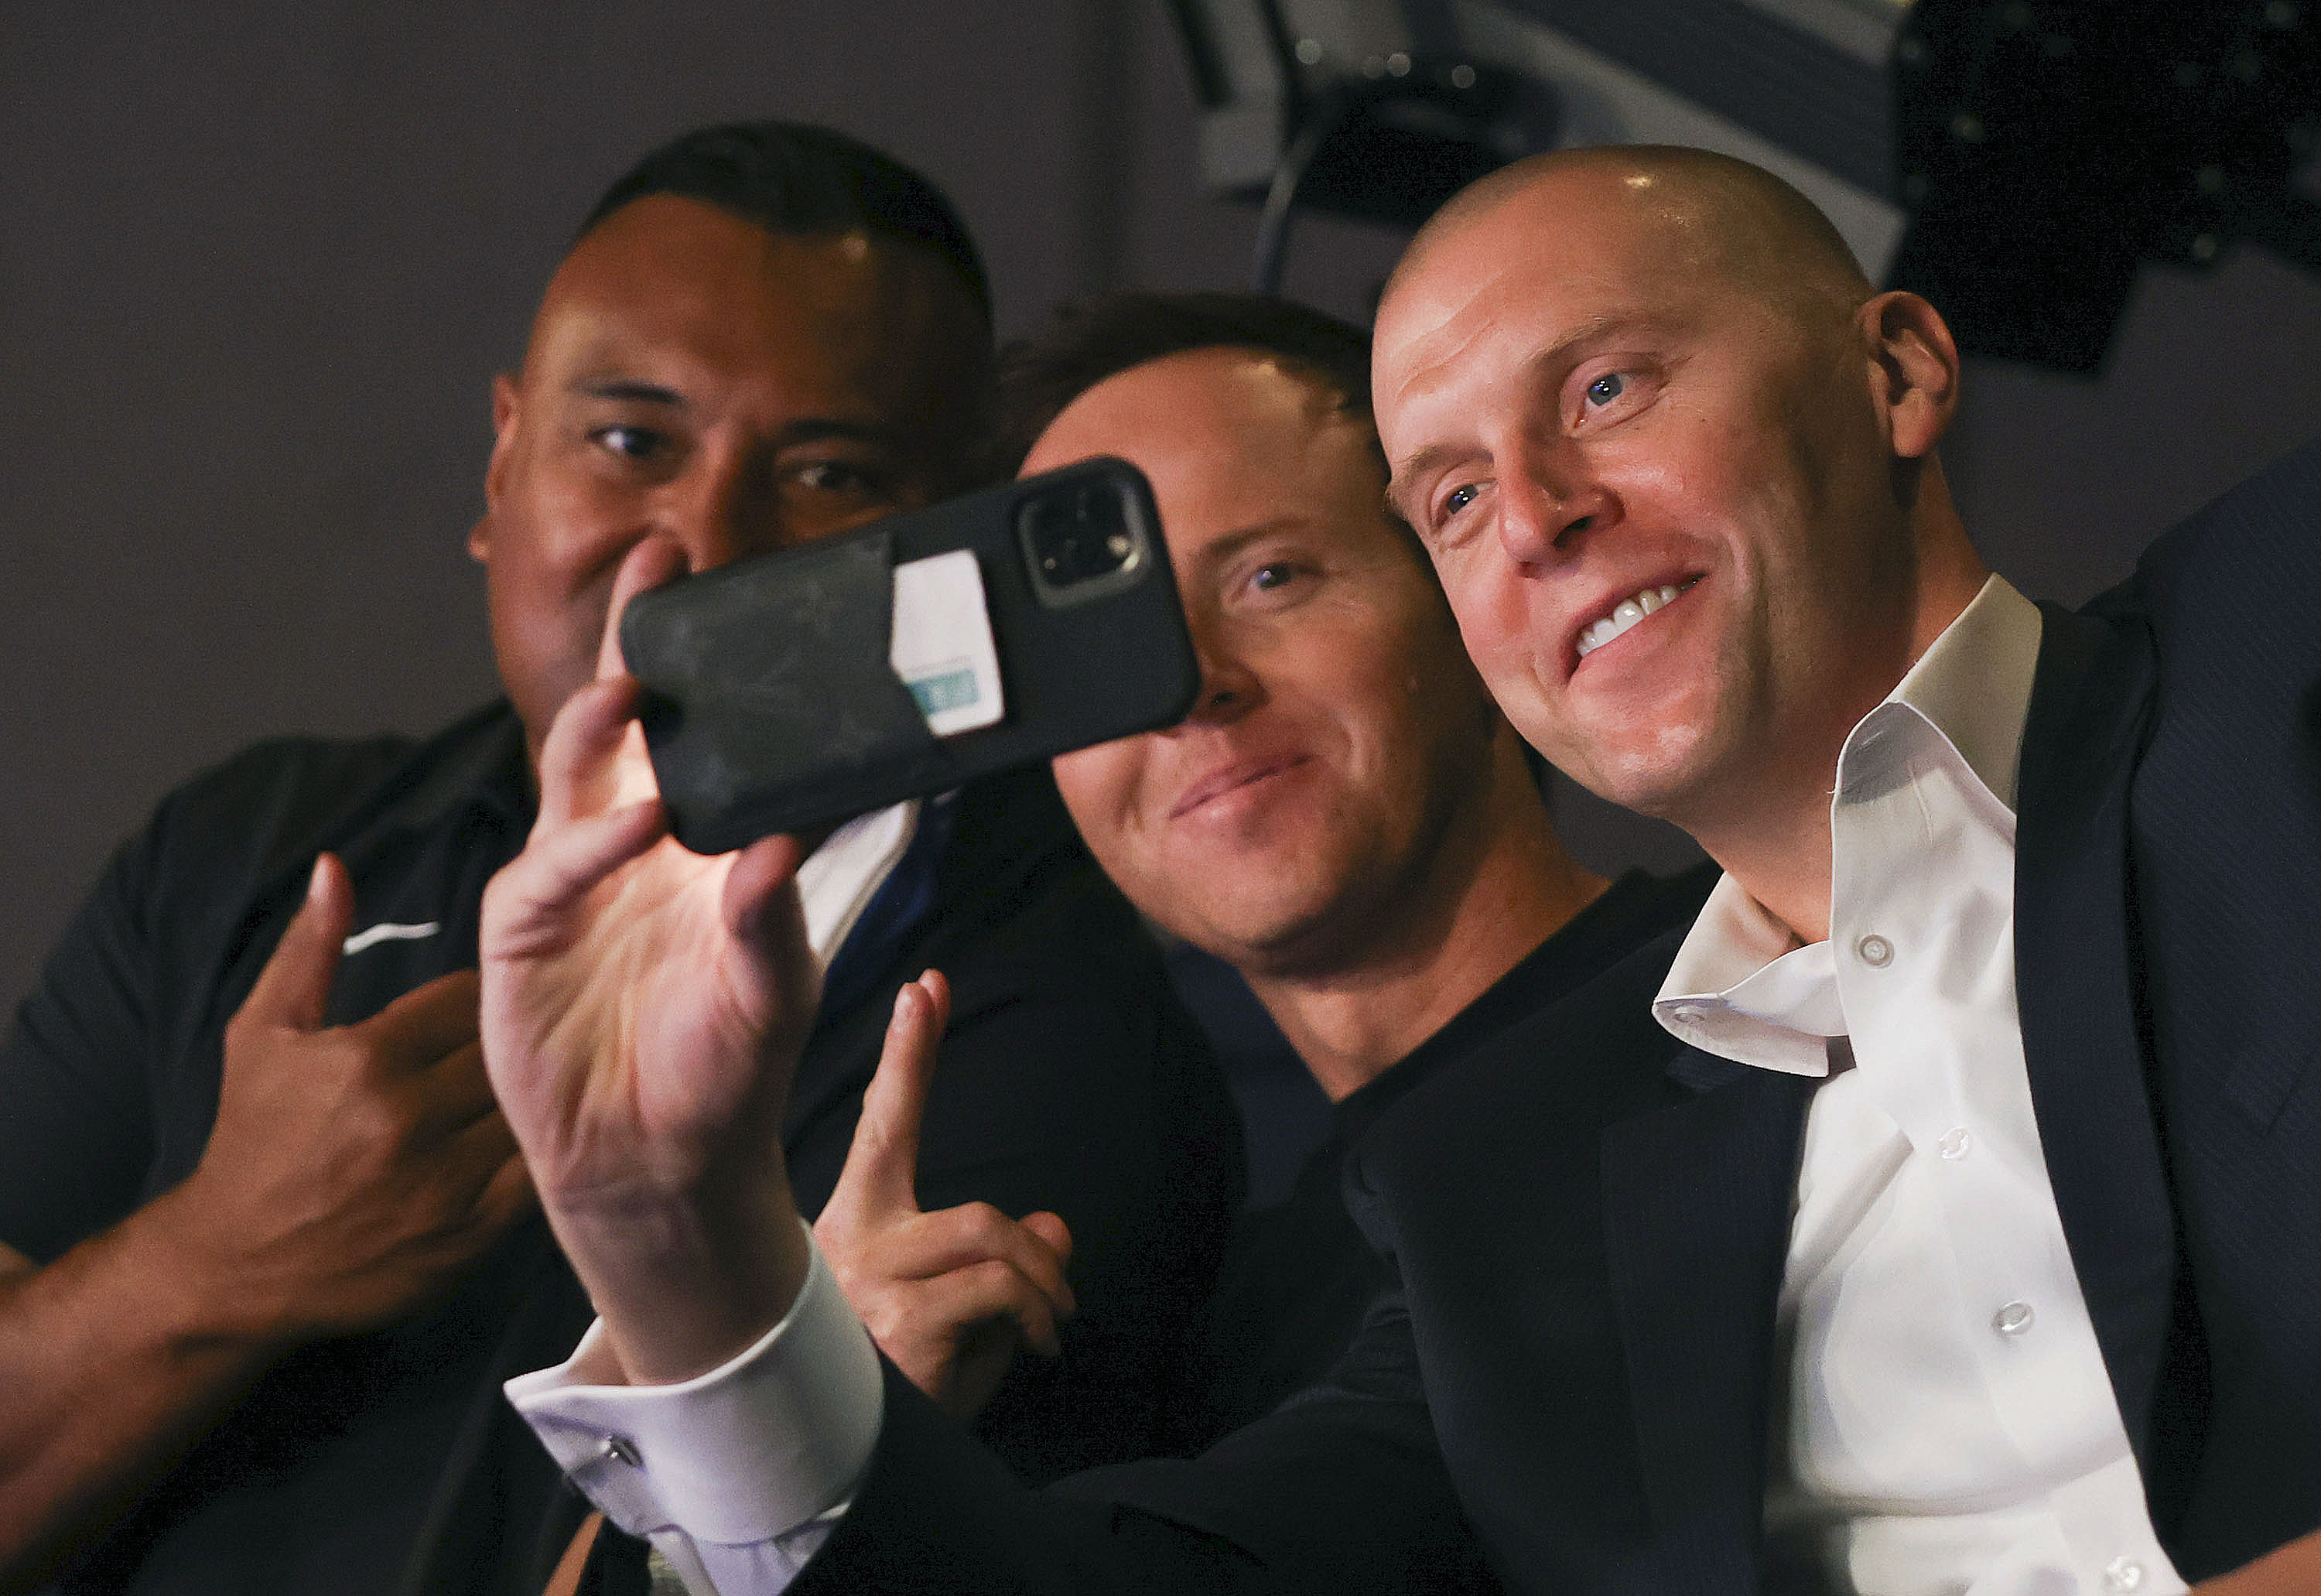 BYU football coach Kalani Sitake, Utah Jazz owner Ryan Smith, and BYU basketball coach Mark Pope take a selfie during a press conference announcing that BYU has accepted an invitation to the Big 12 Conference.